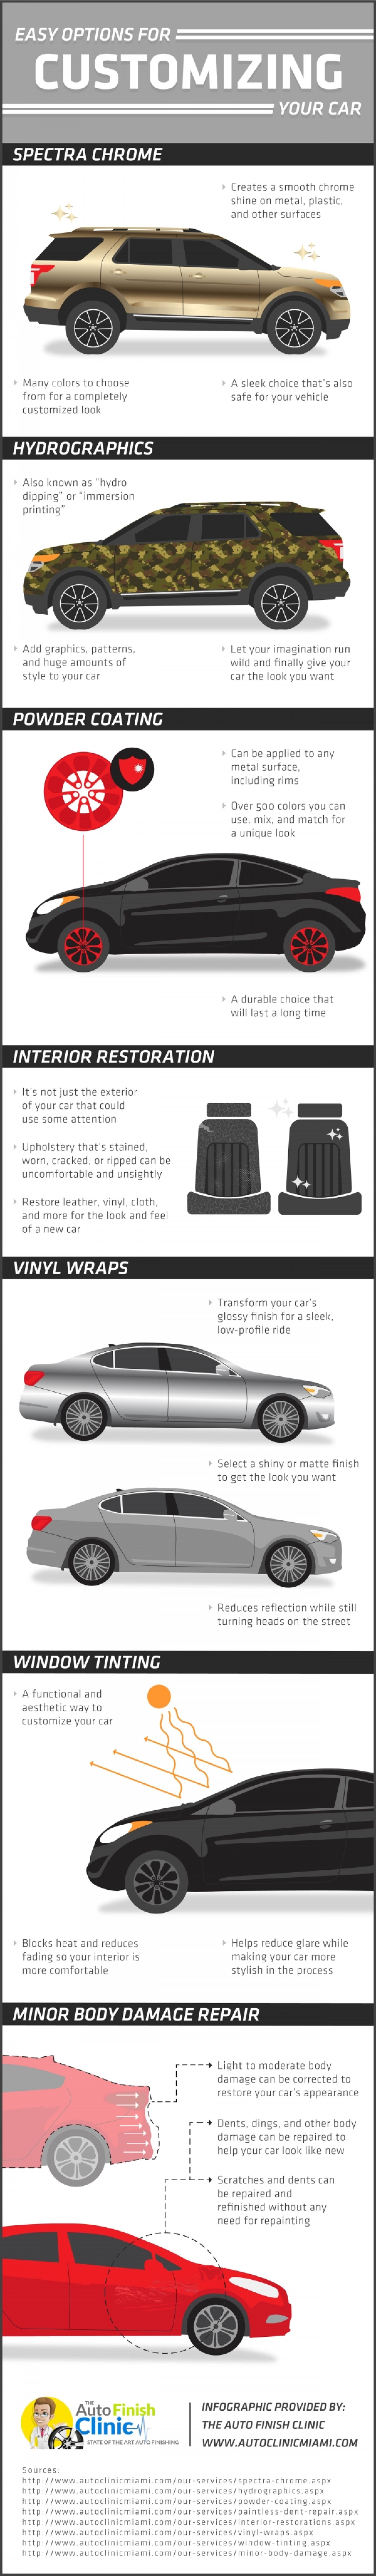 Easy Options for Customizing Your Car  Infographic